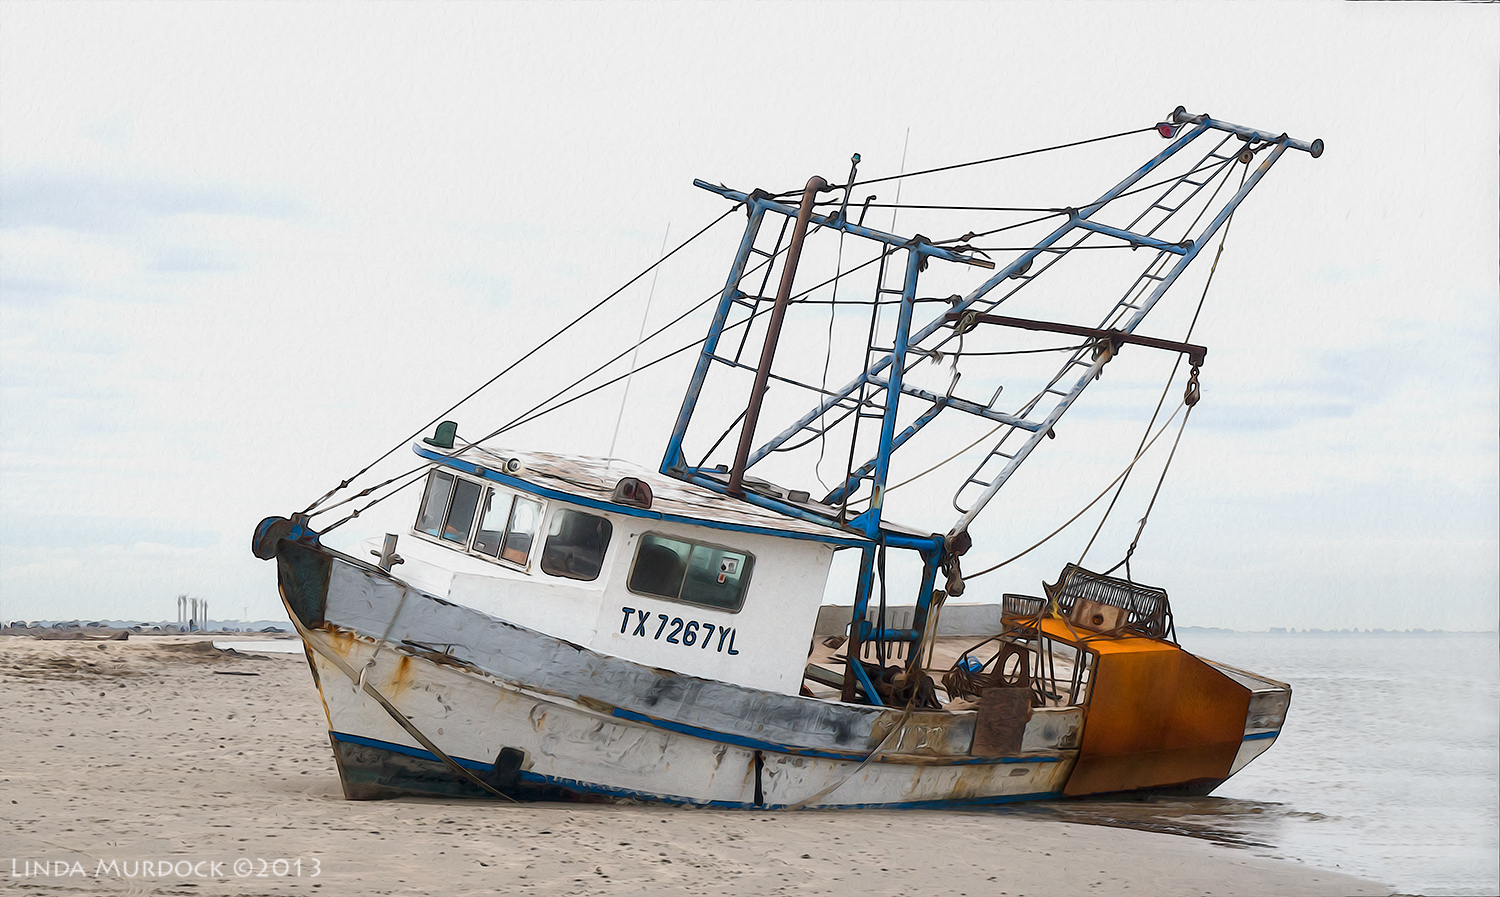 Shrimper aground.    ISO 400 1/400 at f/11.0, focal length109.0mm. Post-processed with Photoshop Overlay and Oil Paint.